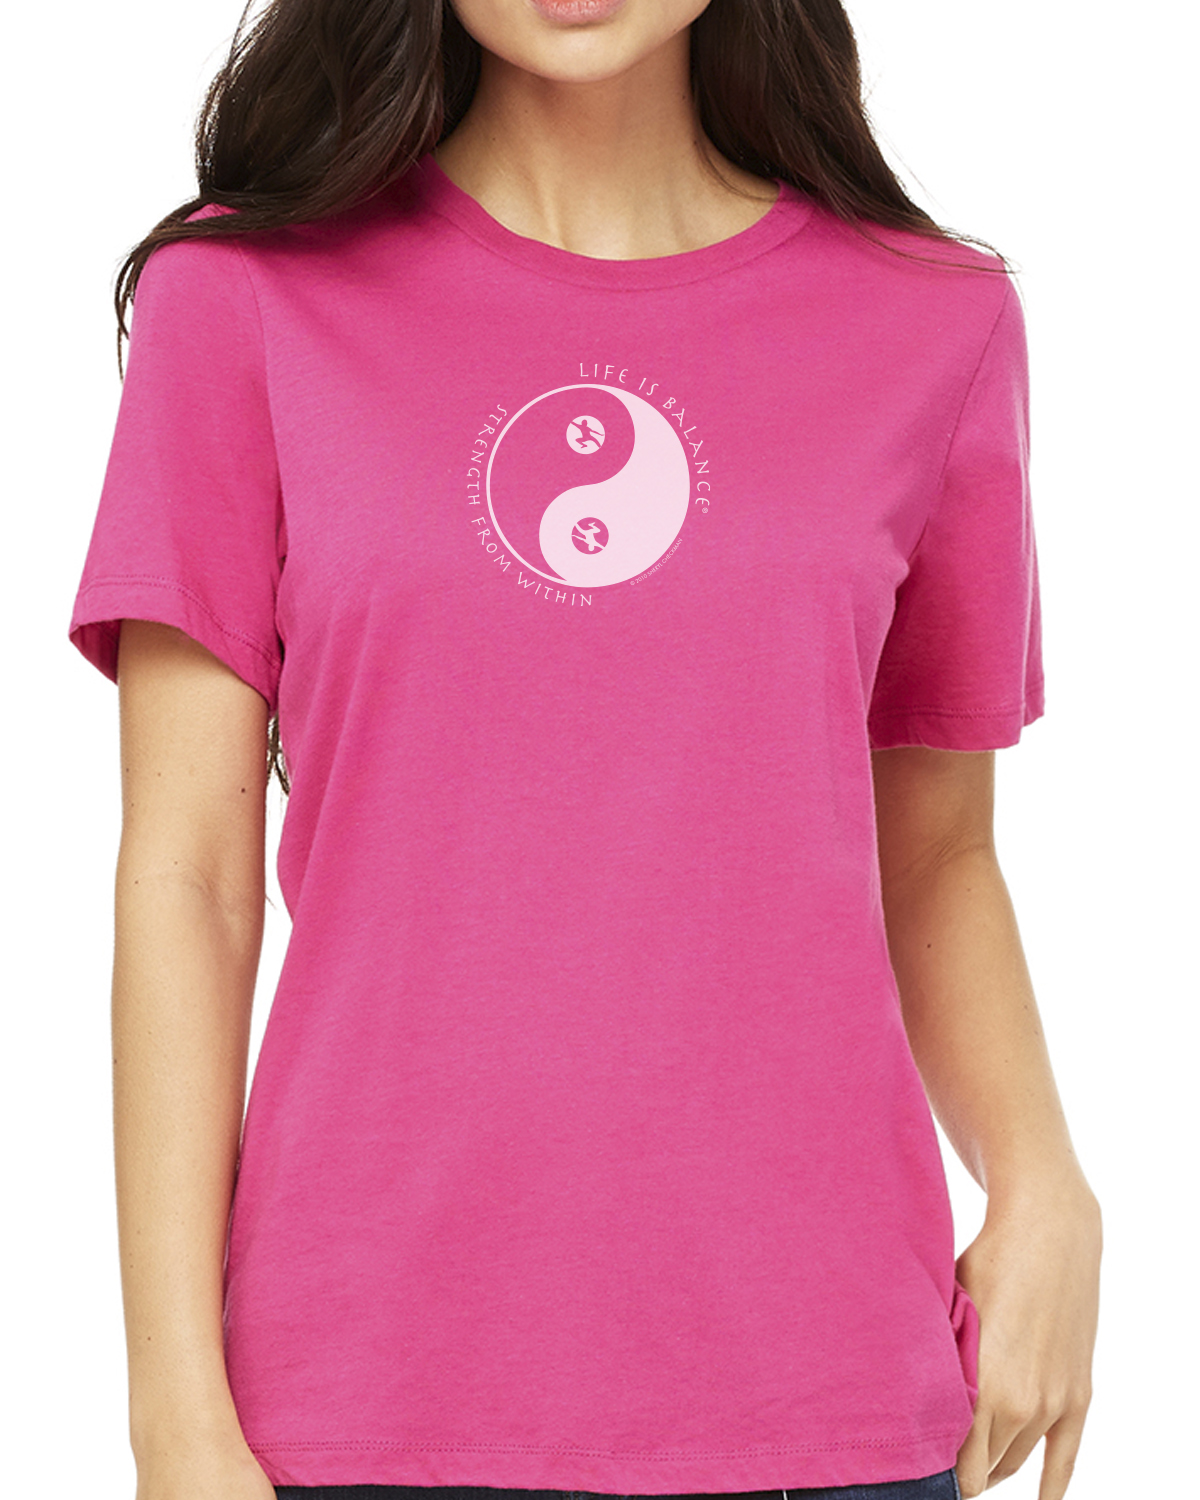 Women's short sleeve Tai Chi T-shirt (berry)